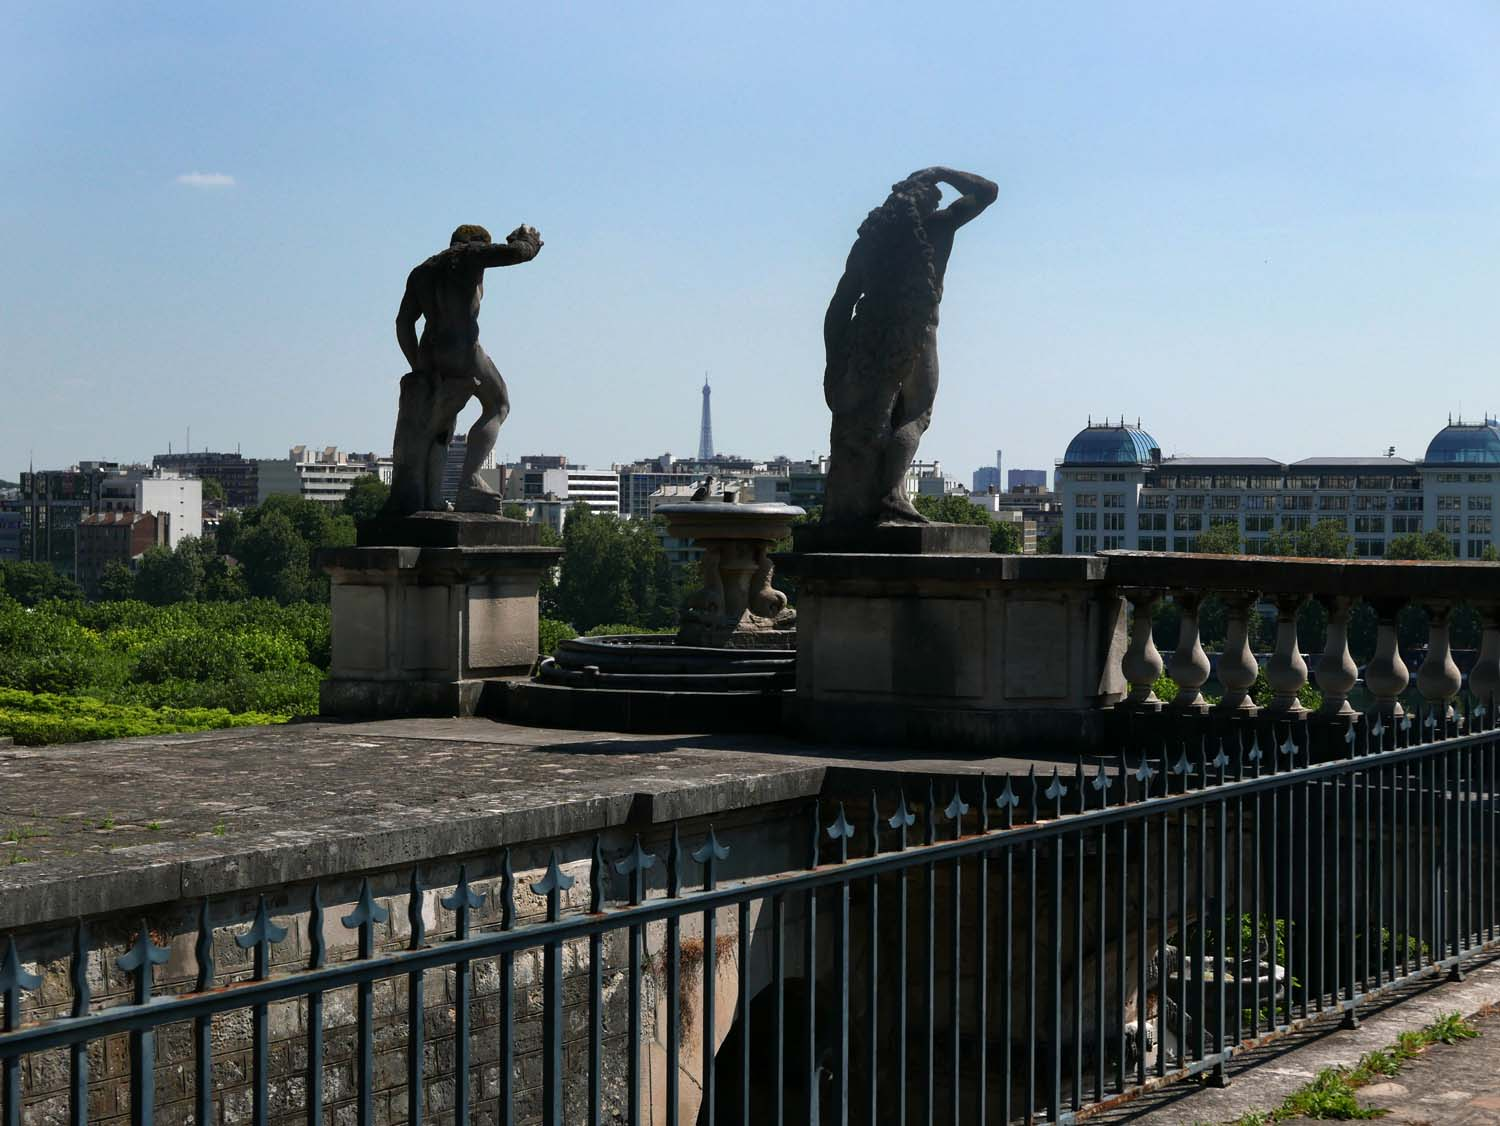 The view from the top of the fountain, looking toward the Seine and Paris